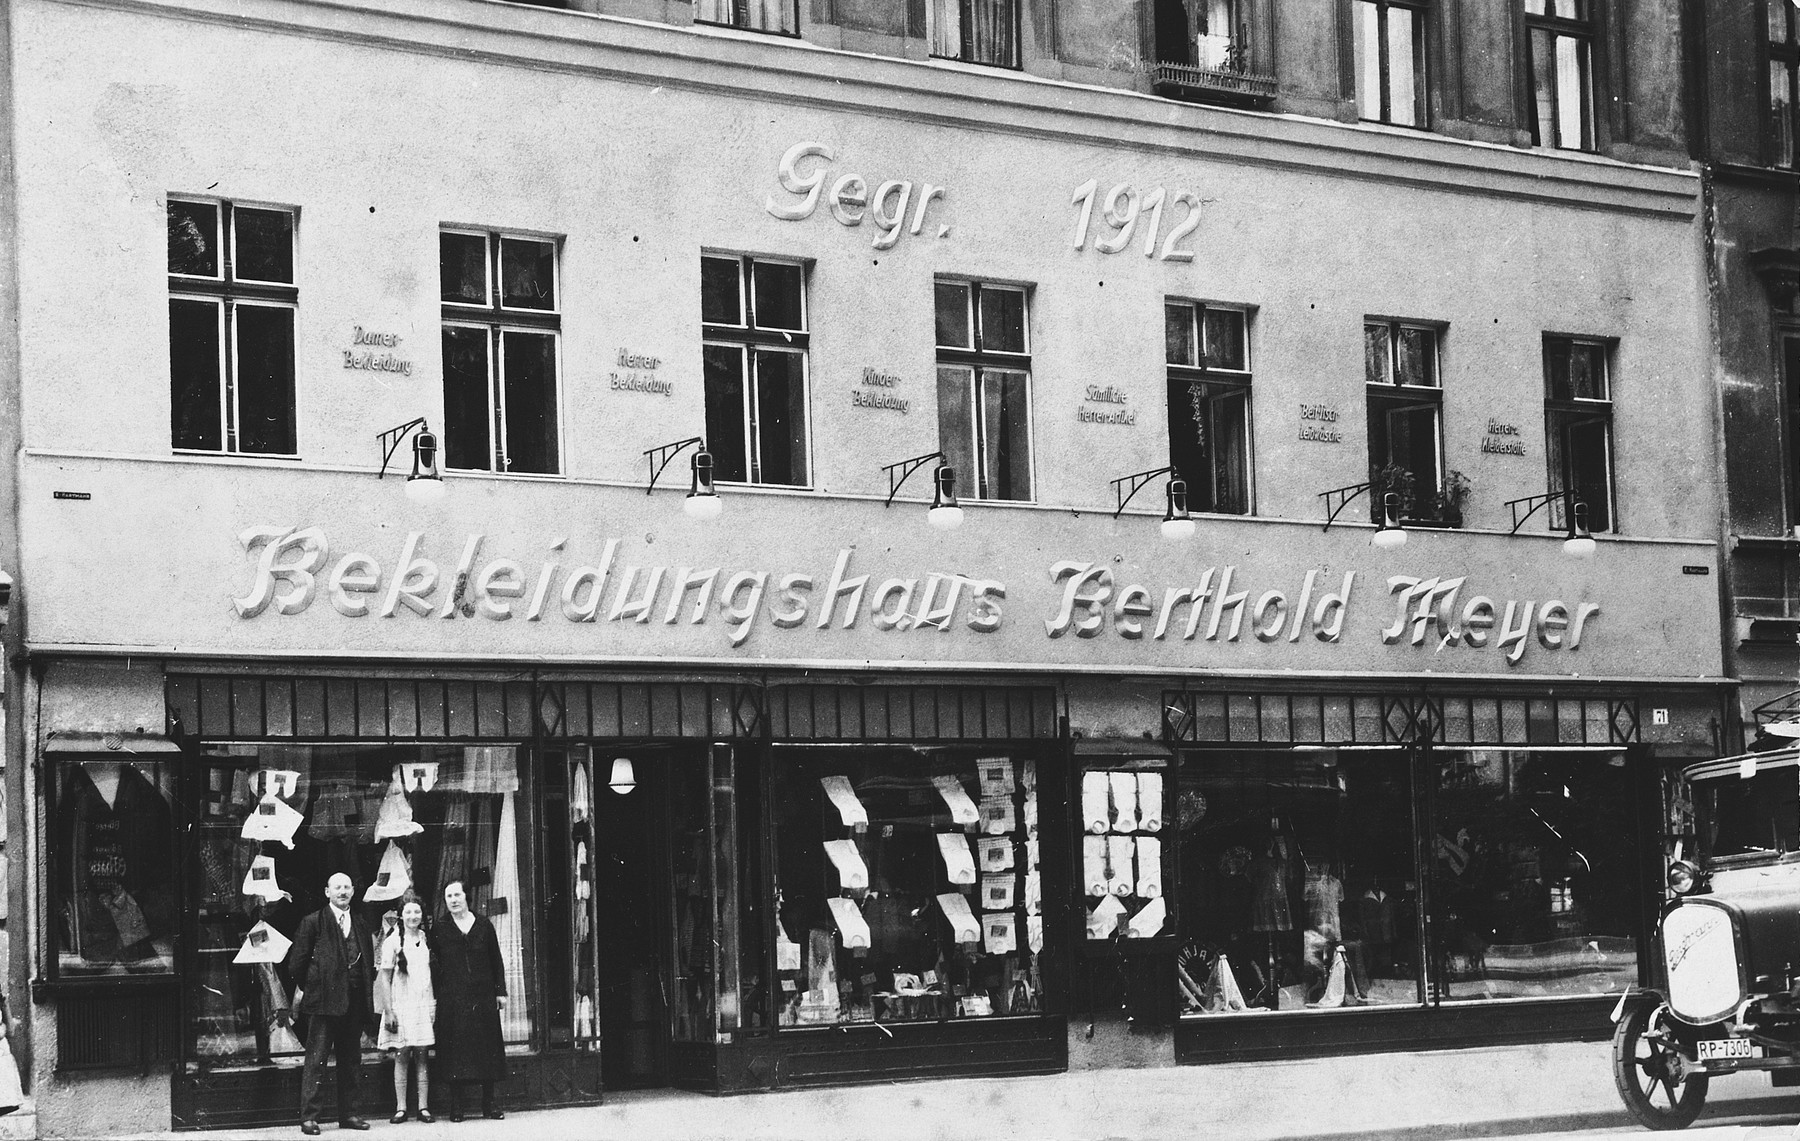 The Meyer family stands in front of Berthold Meyer's clothing store in Breslau Germany.